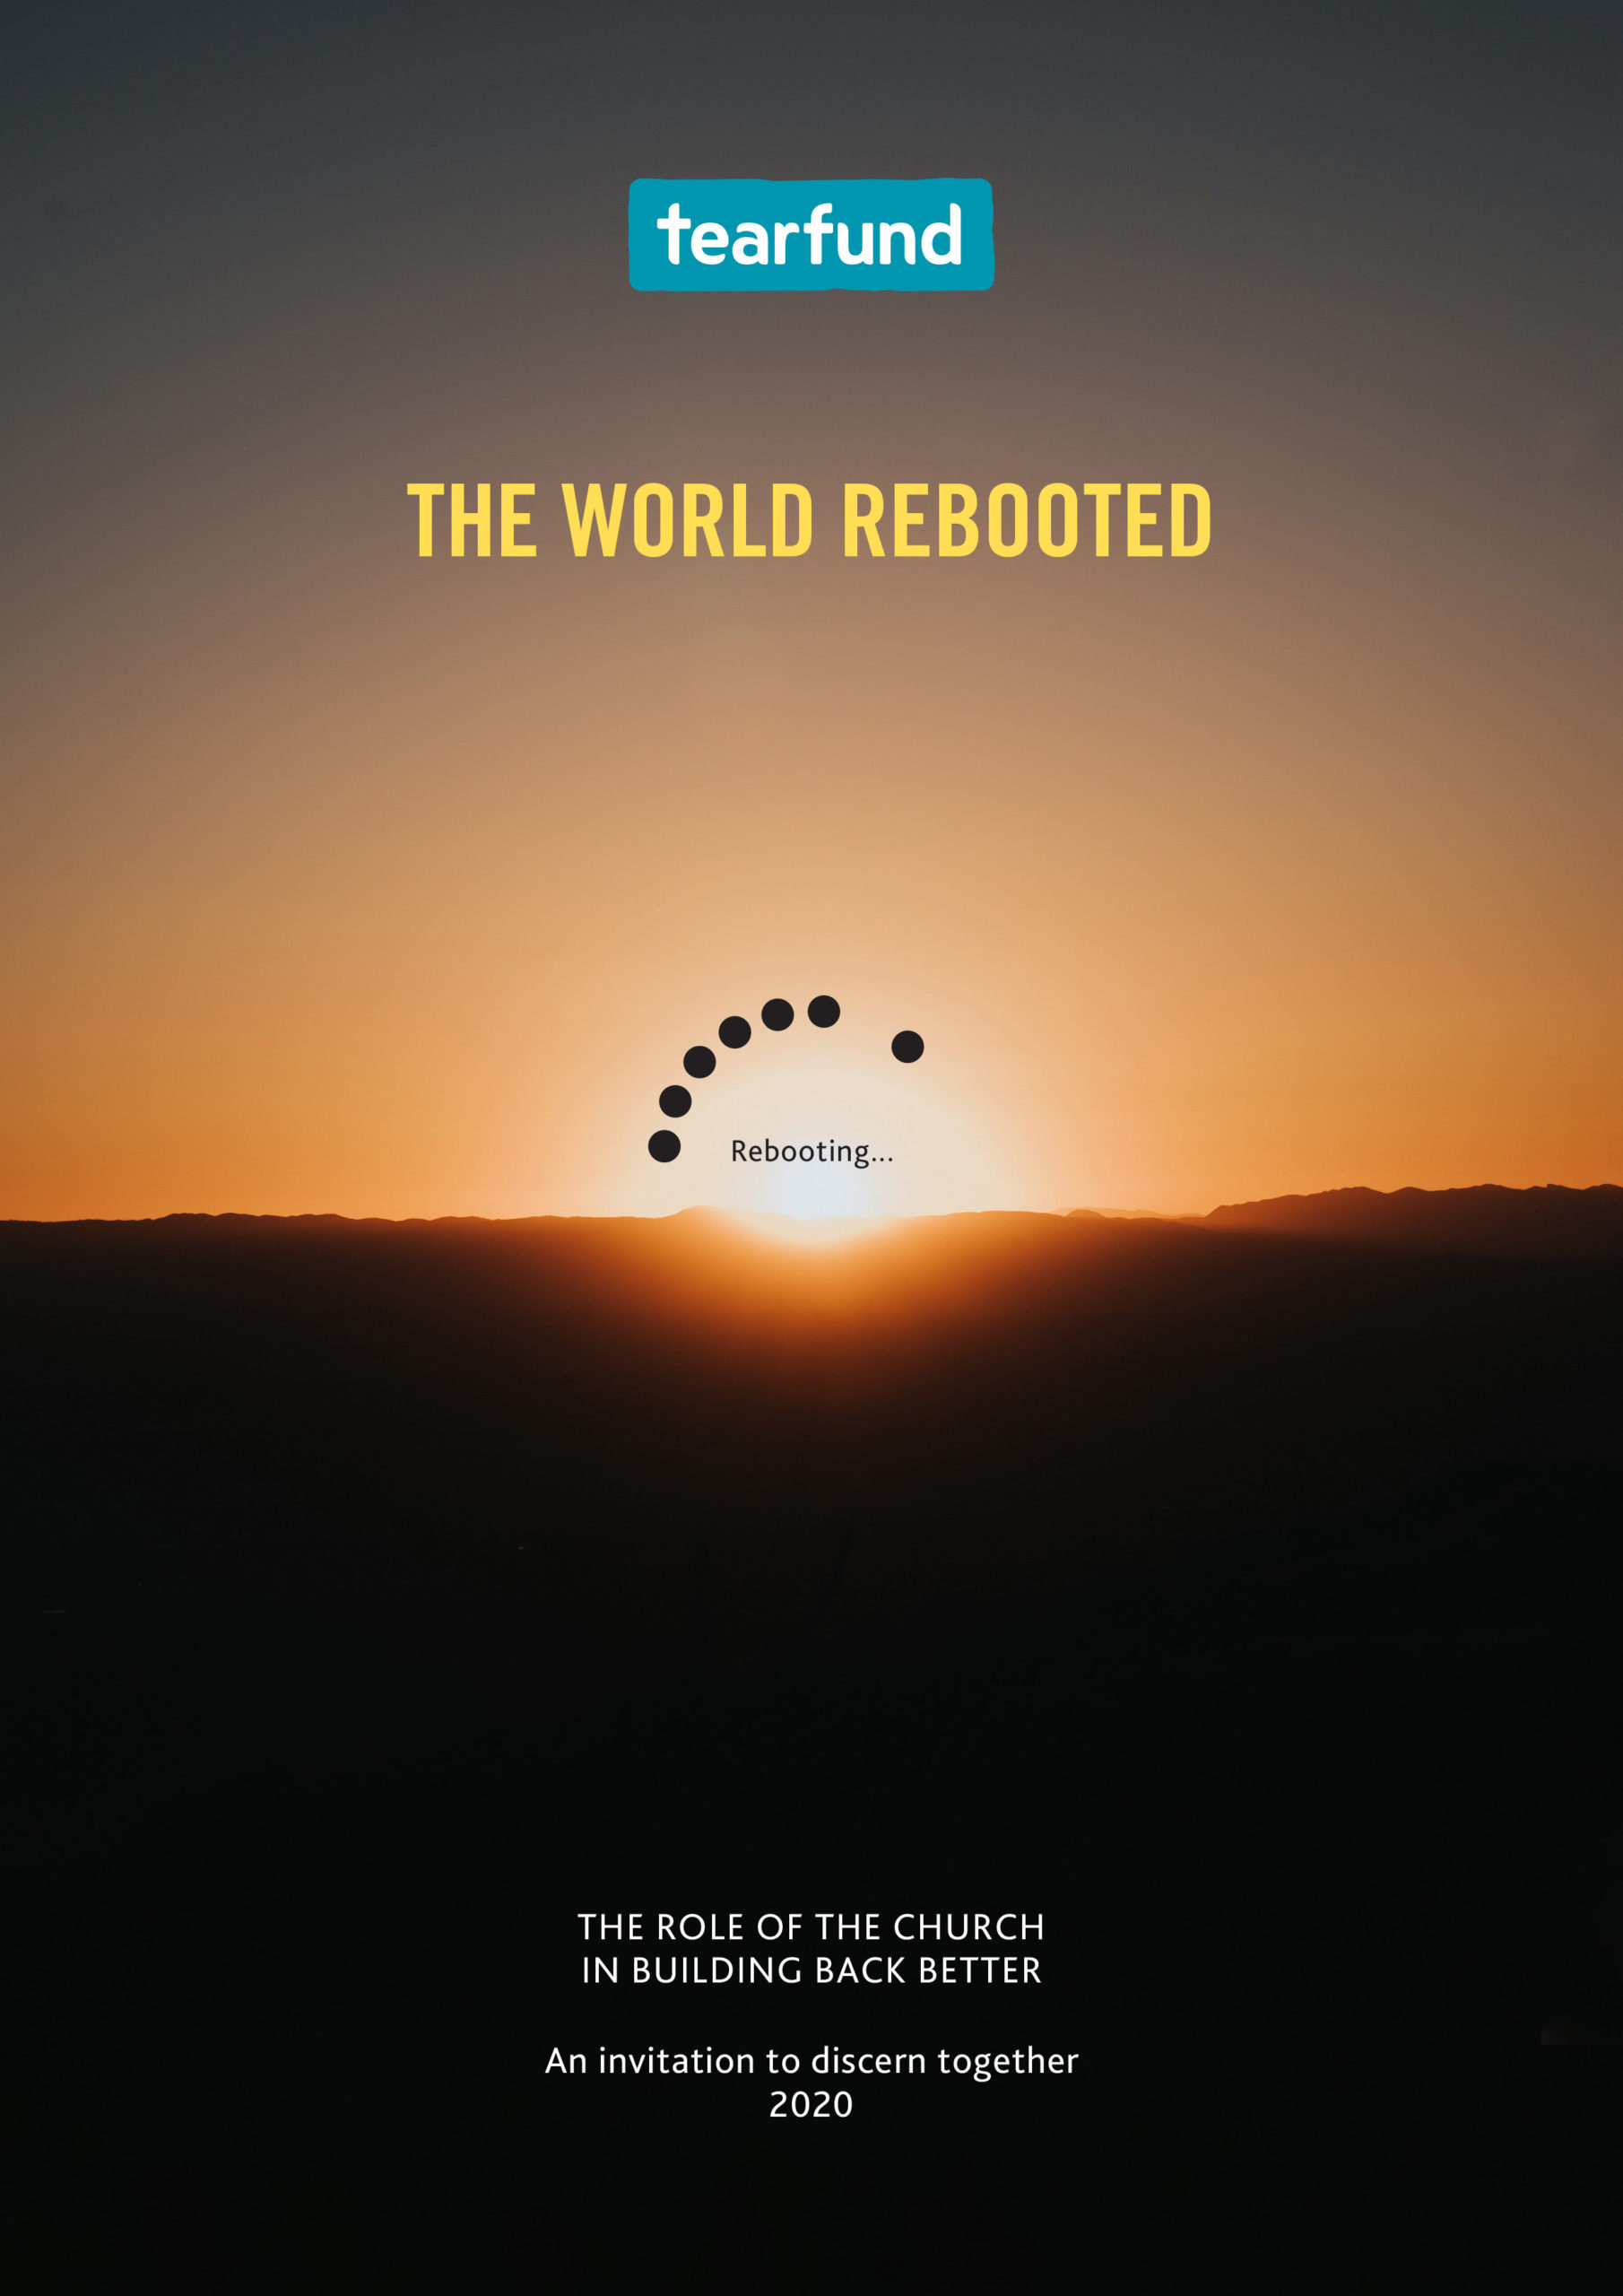 The World is Rebooted